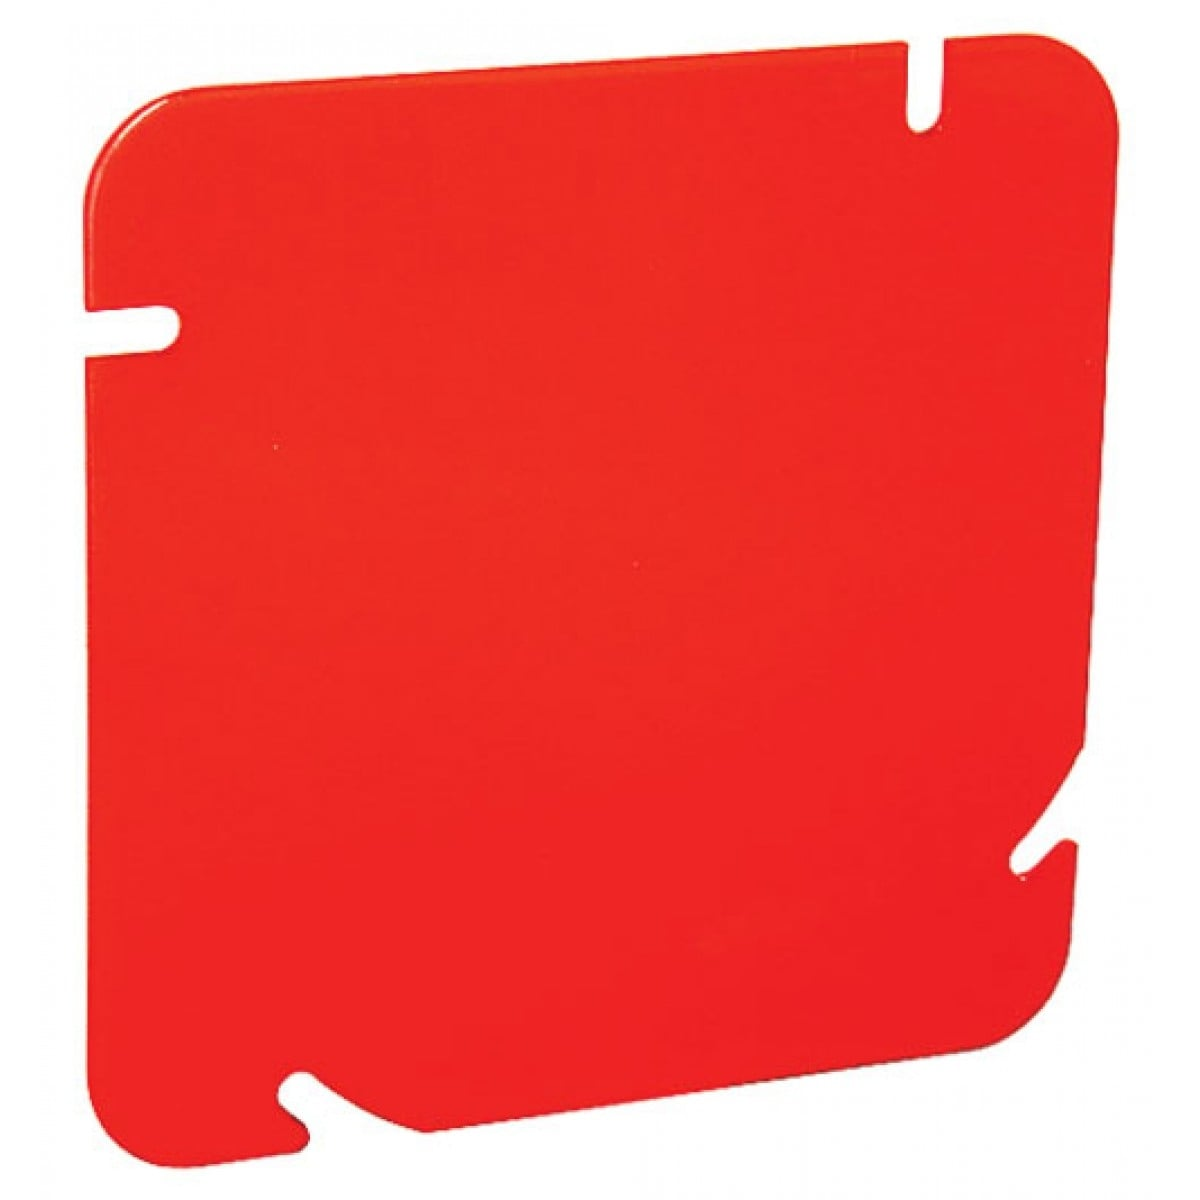 2 Pcs, 4-11/16 Red Blank Box Cover, Flat, Zinc Plated Steel Painted Red